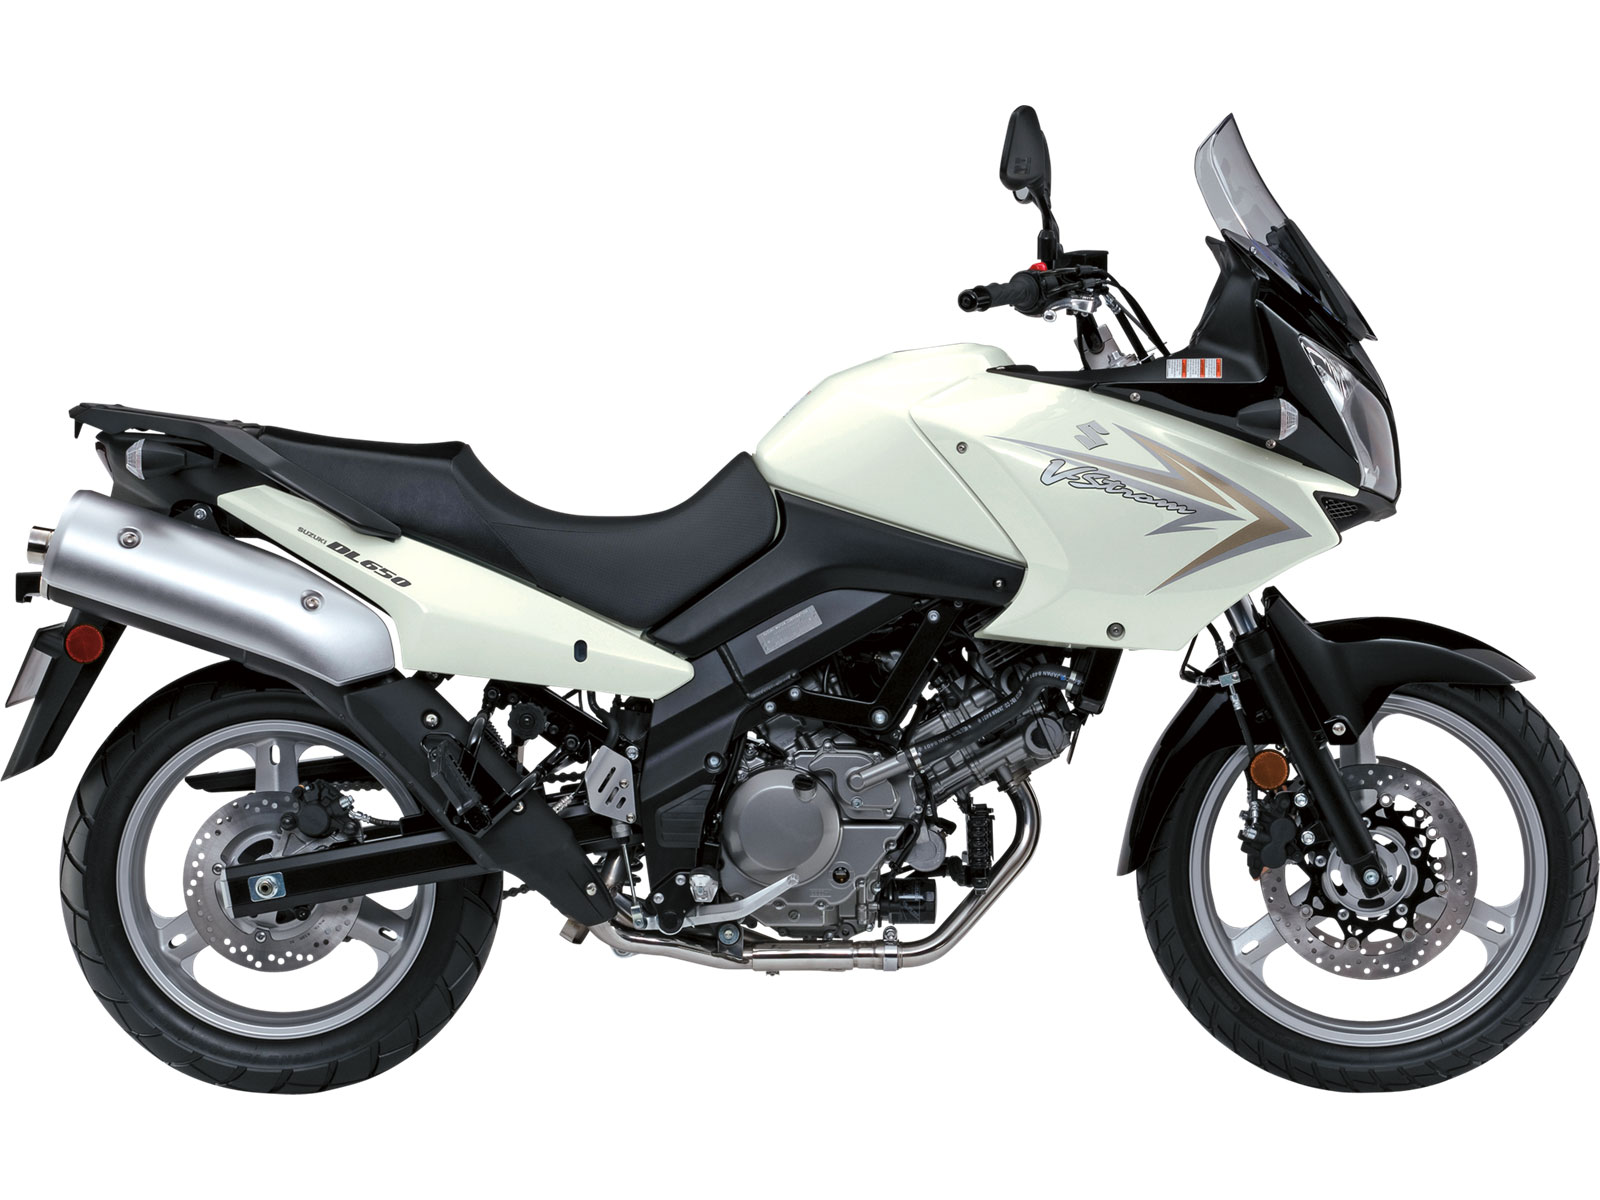 2011 Suzuki V Strom 650 ABS motorcycle The 2011 SUZUKI V strom, the thrill on two wheels